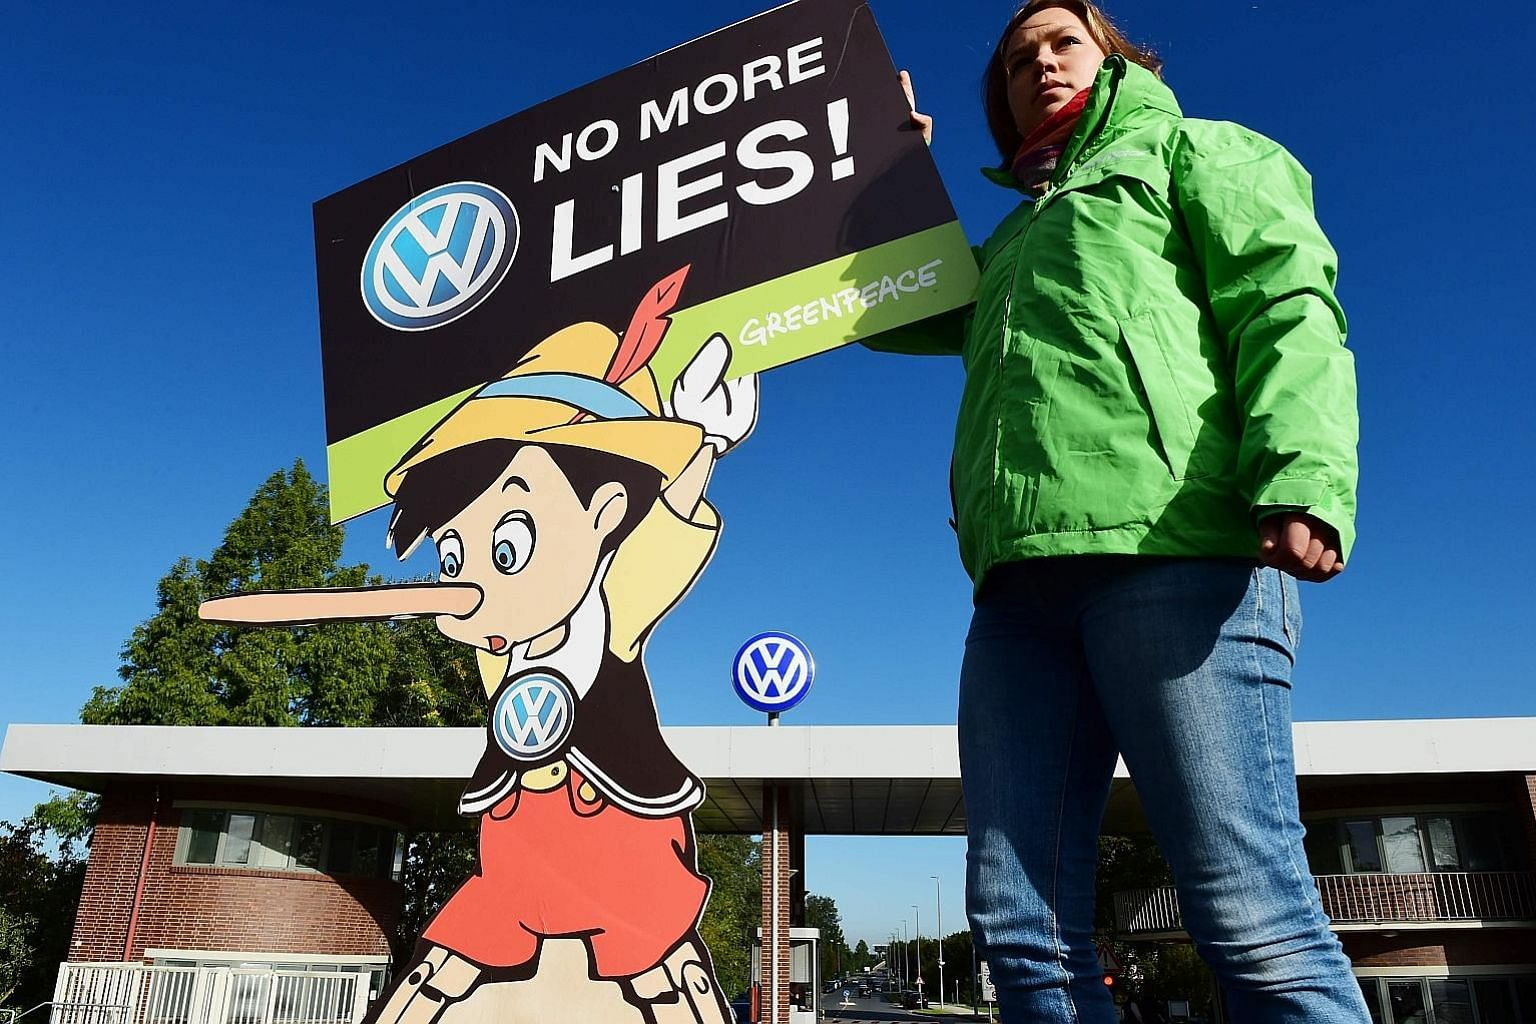 A Greenpeace activist protesting in front of the headquarters of German carmaker Volkswagen in Wolfsburg last month. The auto behemoth has been hit by a scandal involving fraudulent emissions tests of its diesel vehicles. PHOTO: AGENCE FRANCE-PRESSE